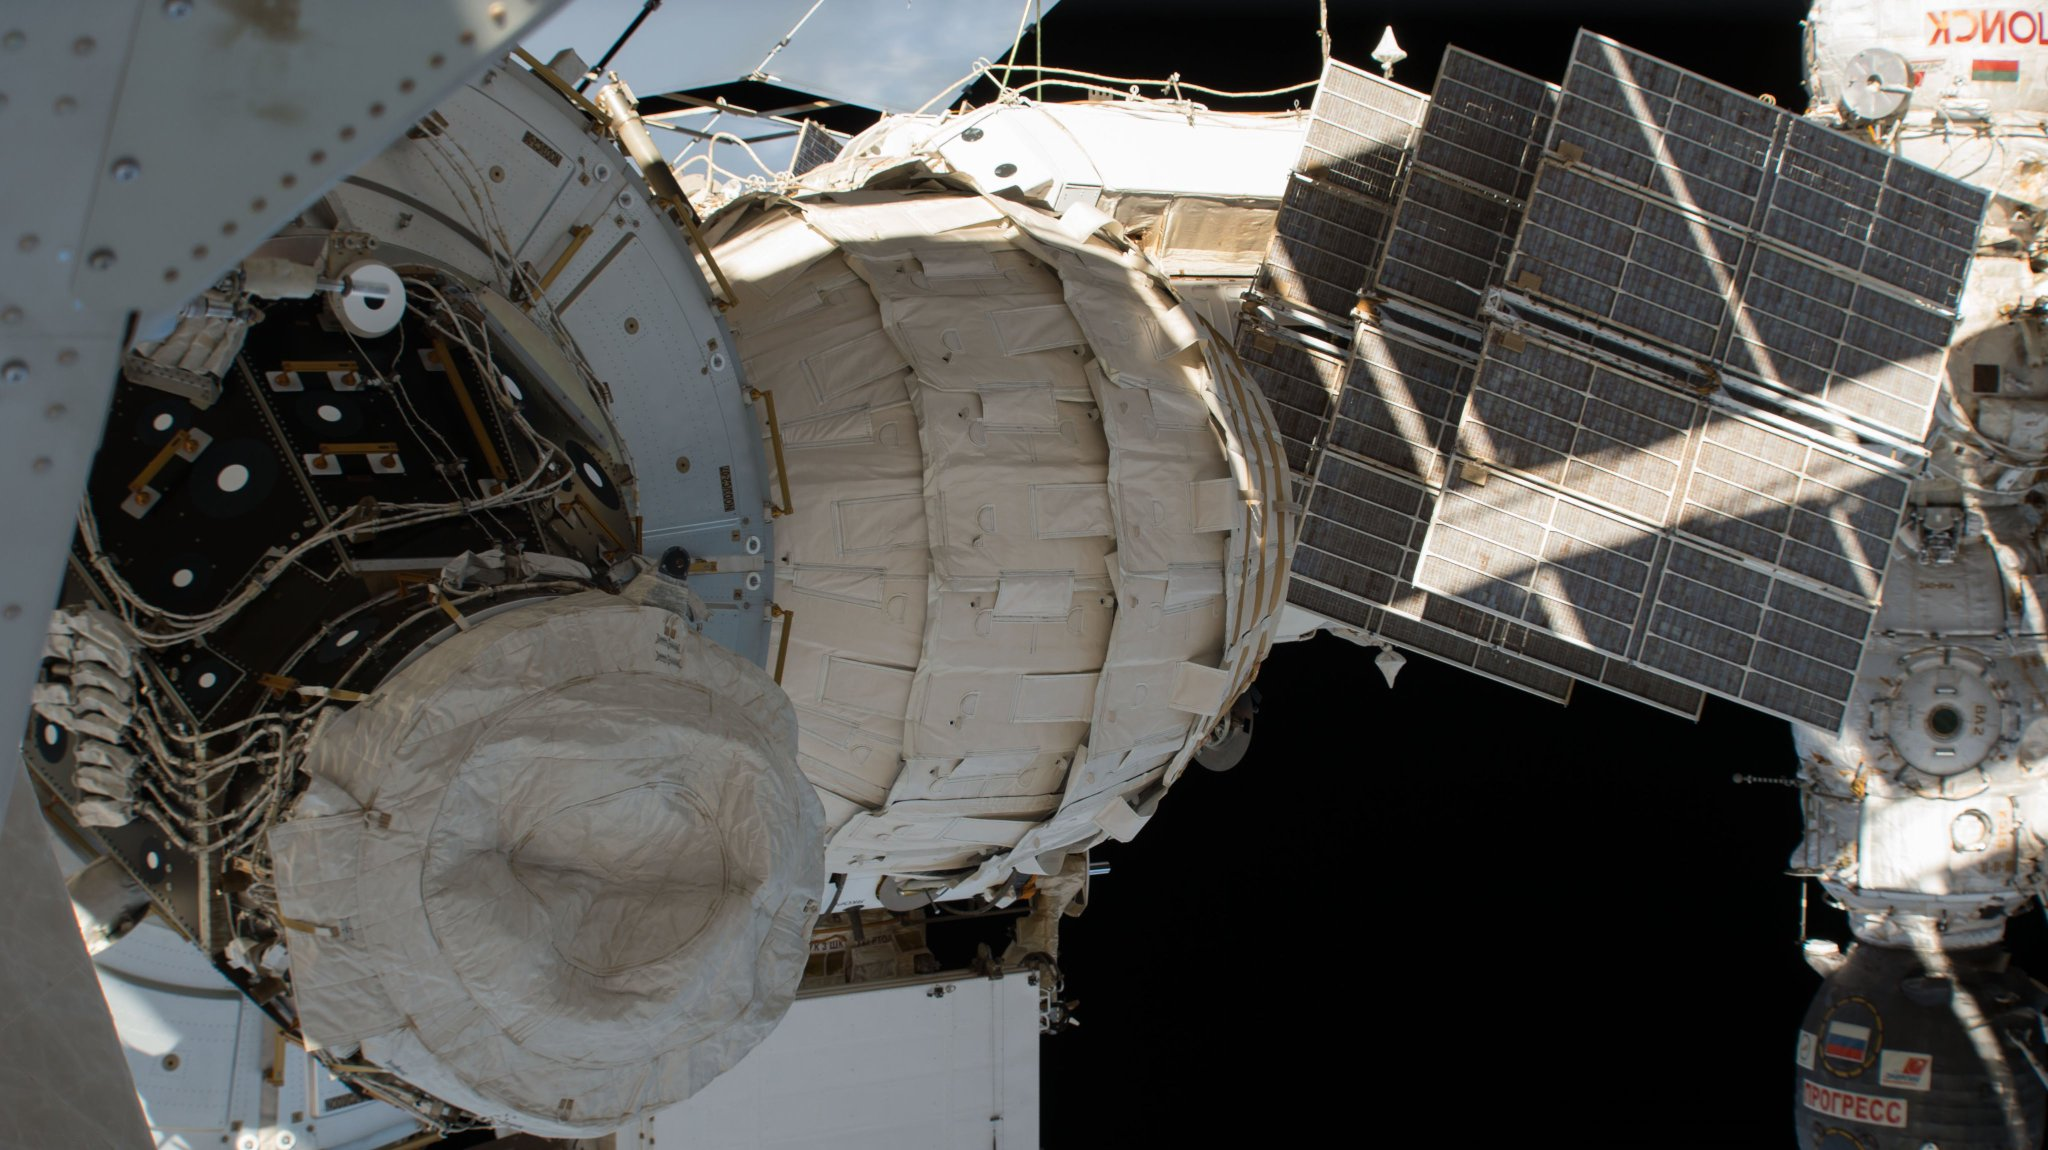 The Bigelow Aerospace Activity Module as seen from the exterior of the station. Photo Credit: NASA